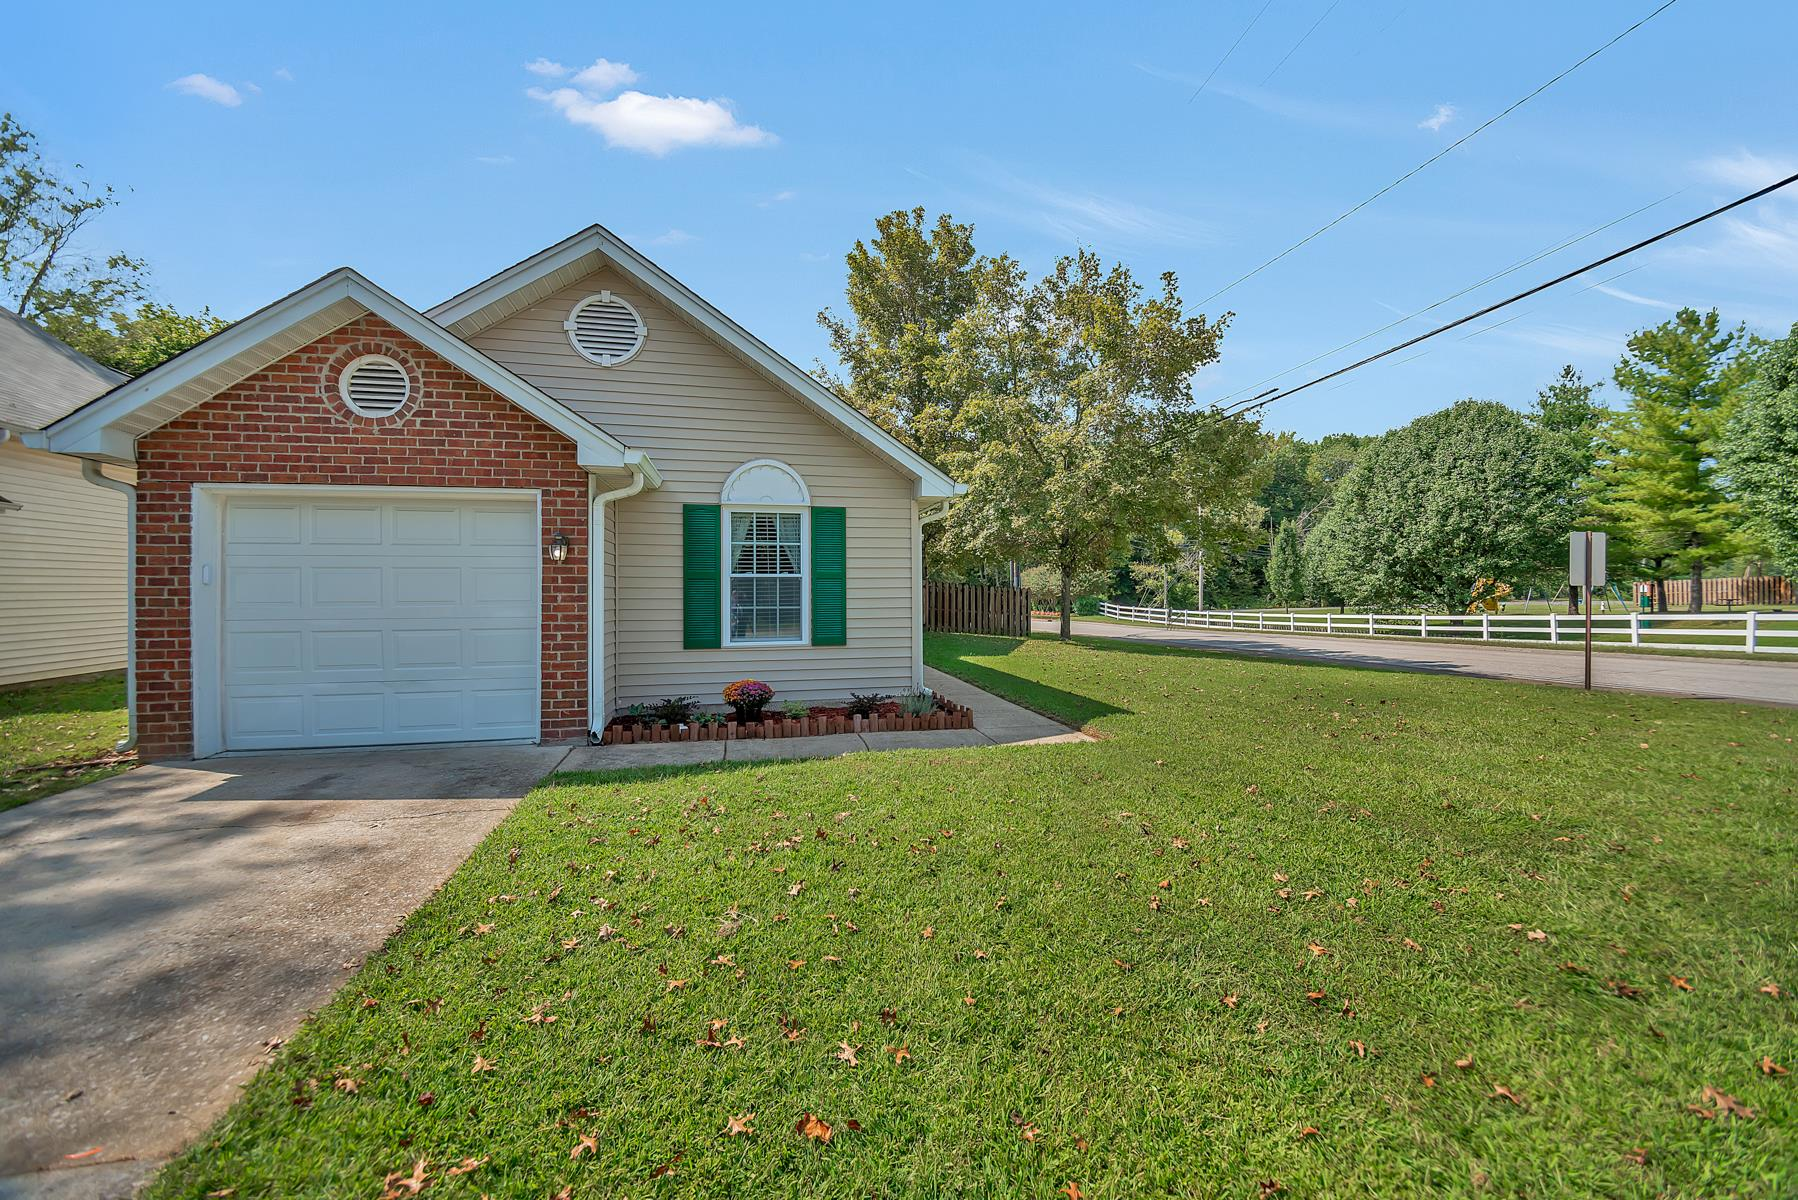 2000 Valley Dr, Bethpage, TN 37022 - Bethpage, TN real estate listing